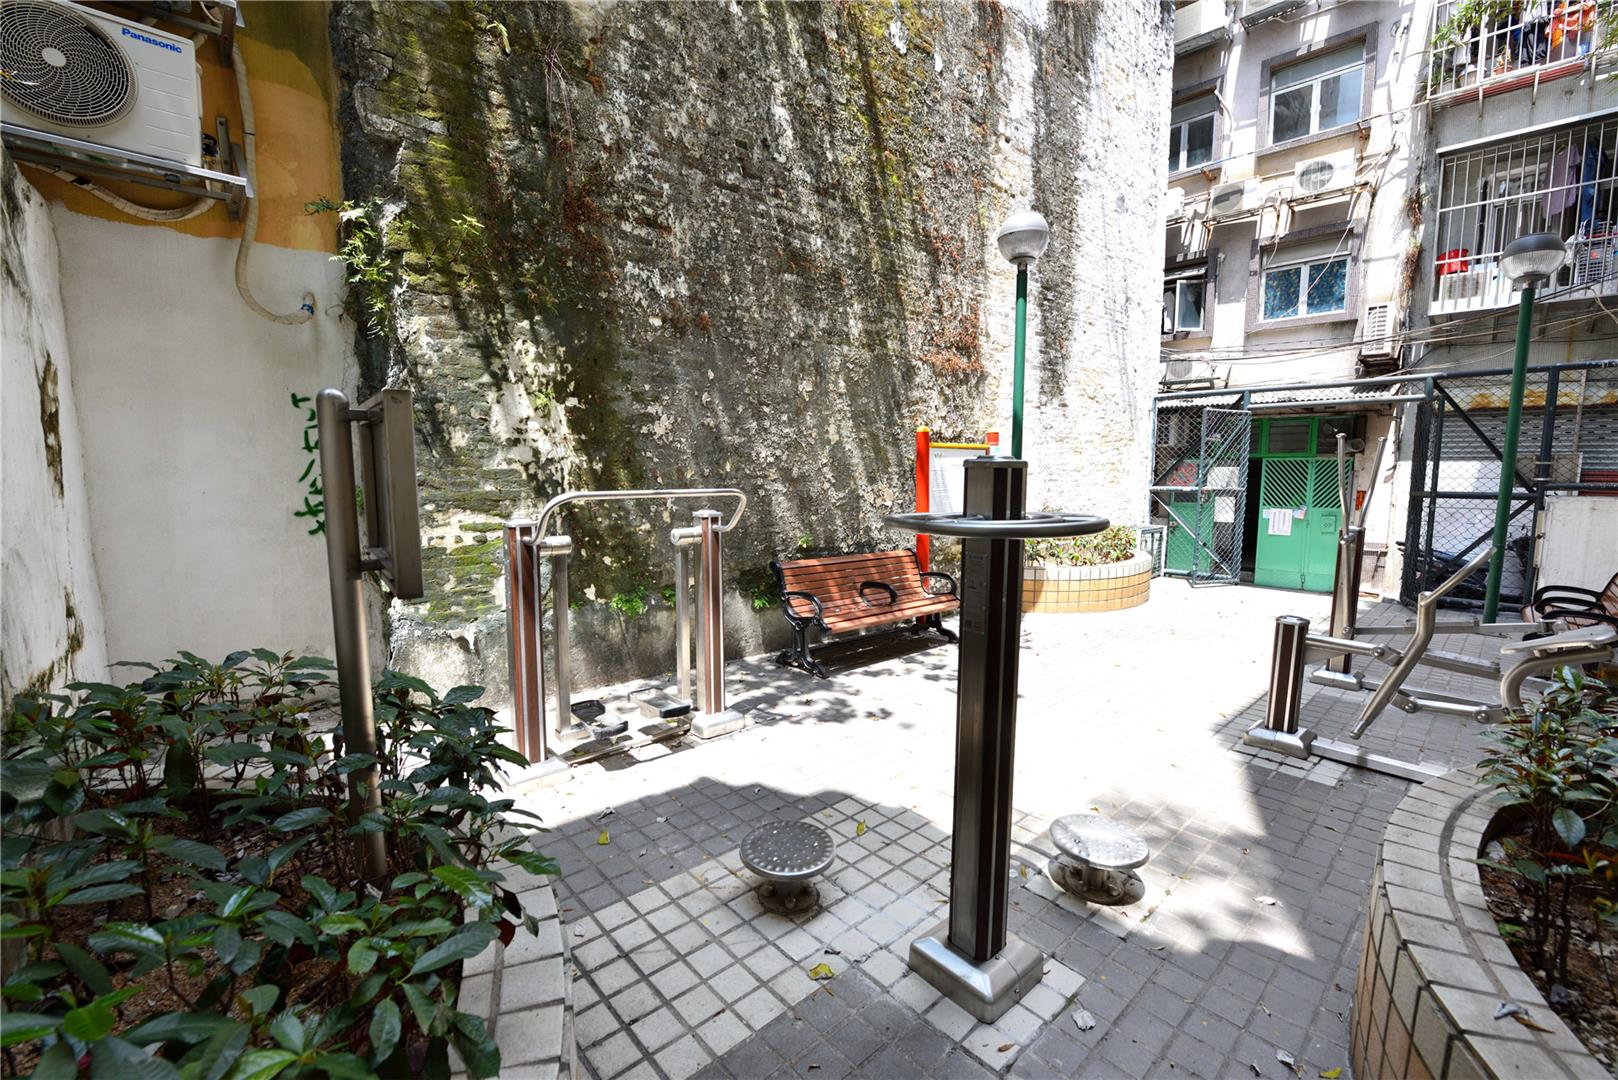 Leisure Area in Beco dos Cotovelos